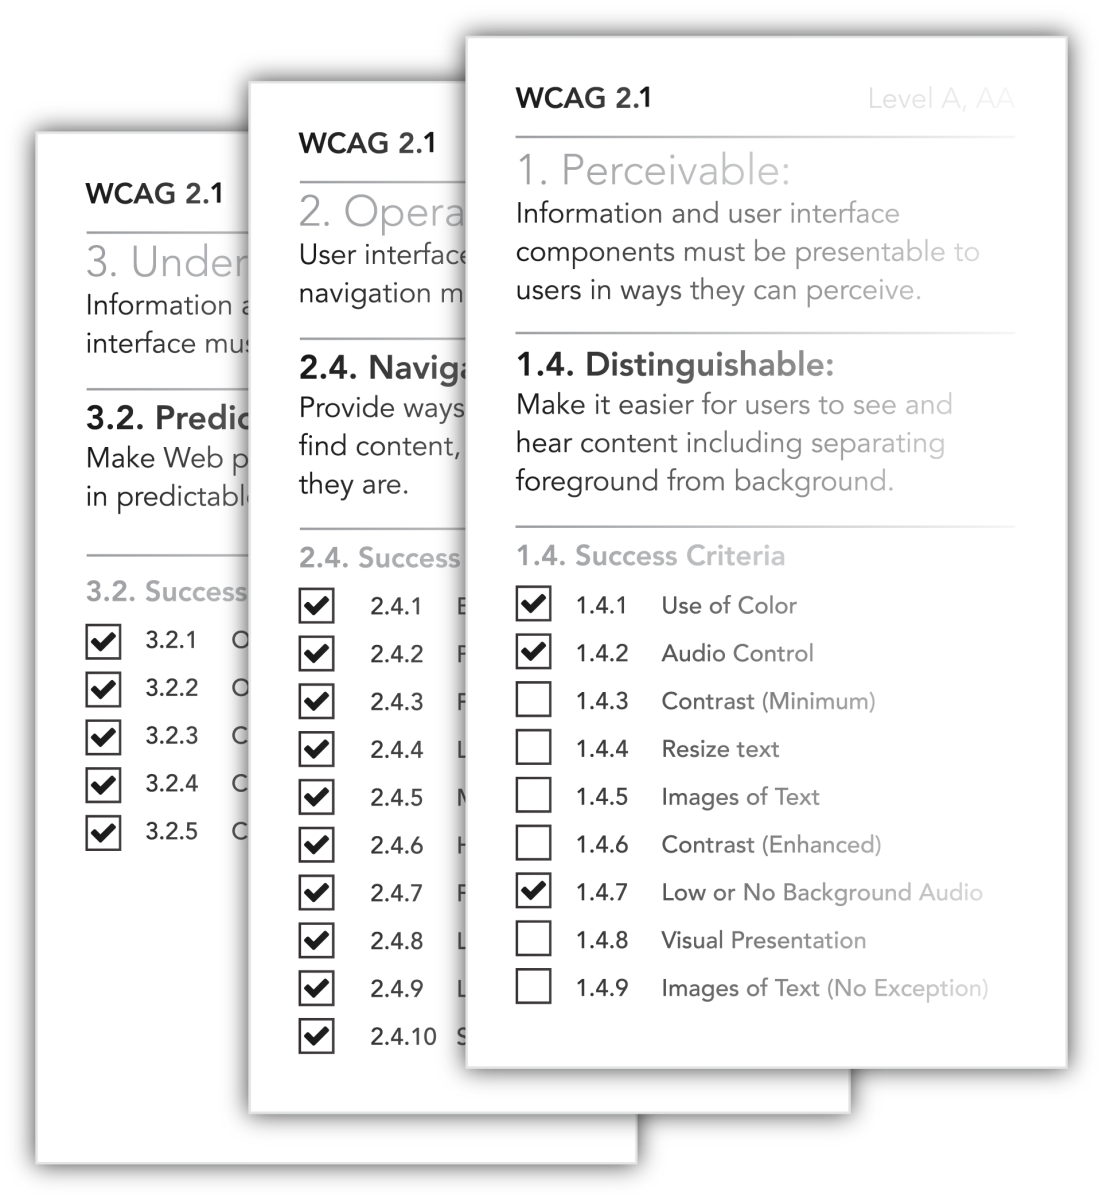 WCAG Guidelines 2.1